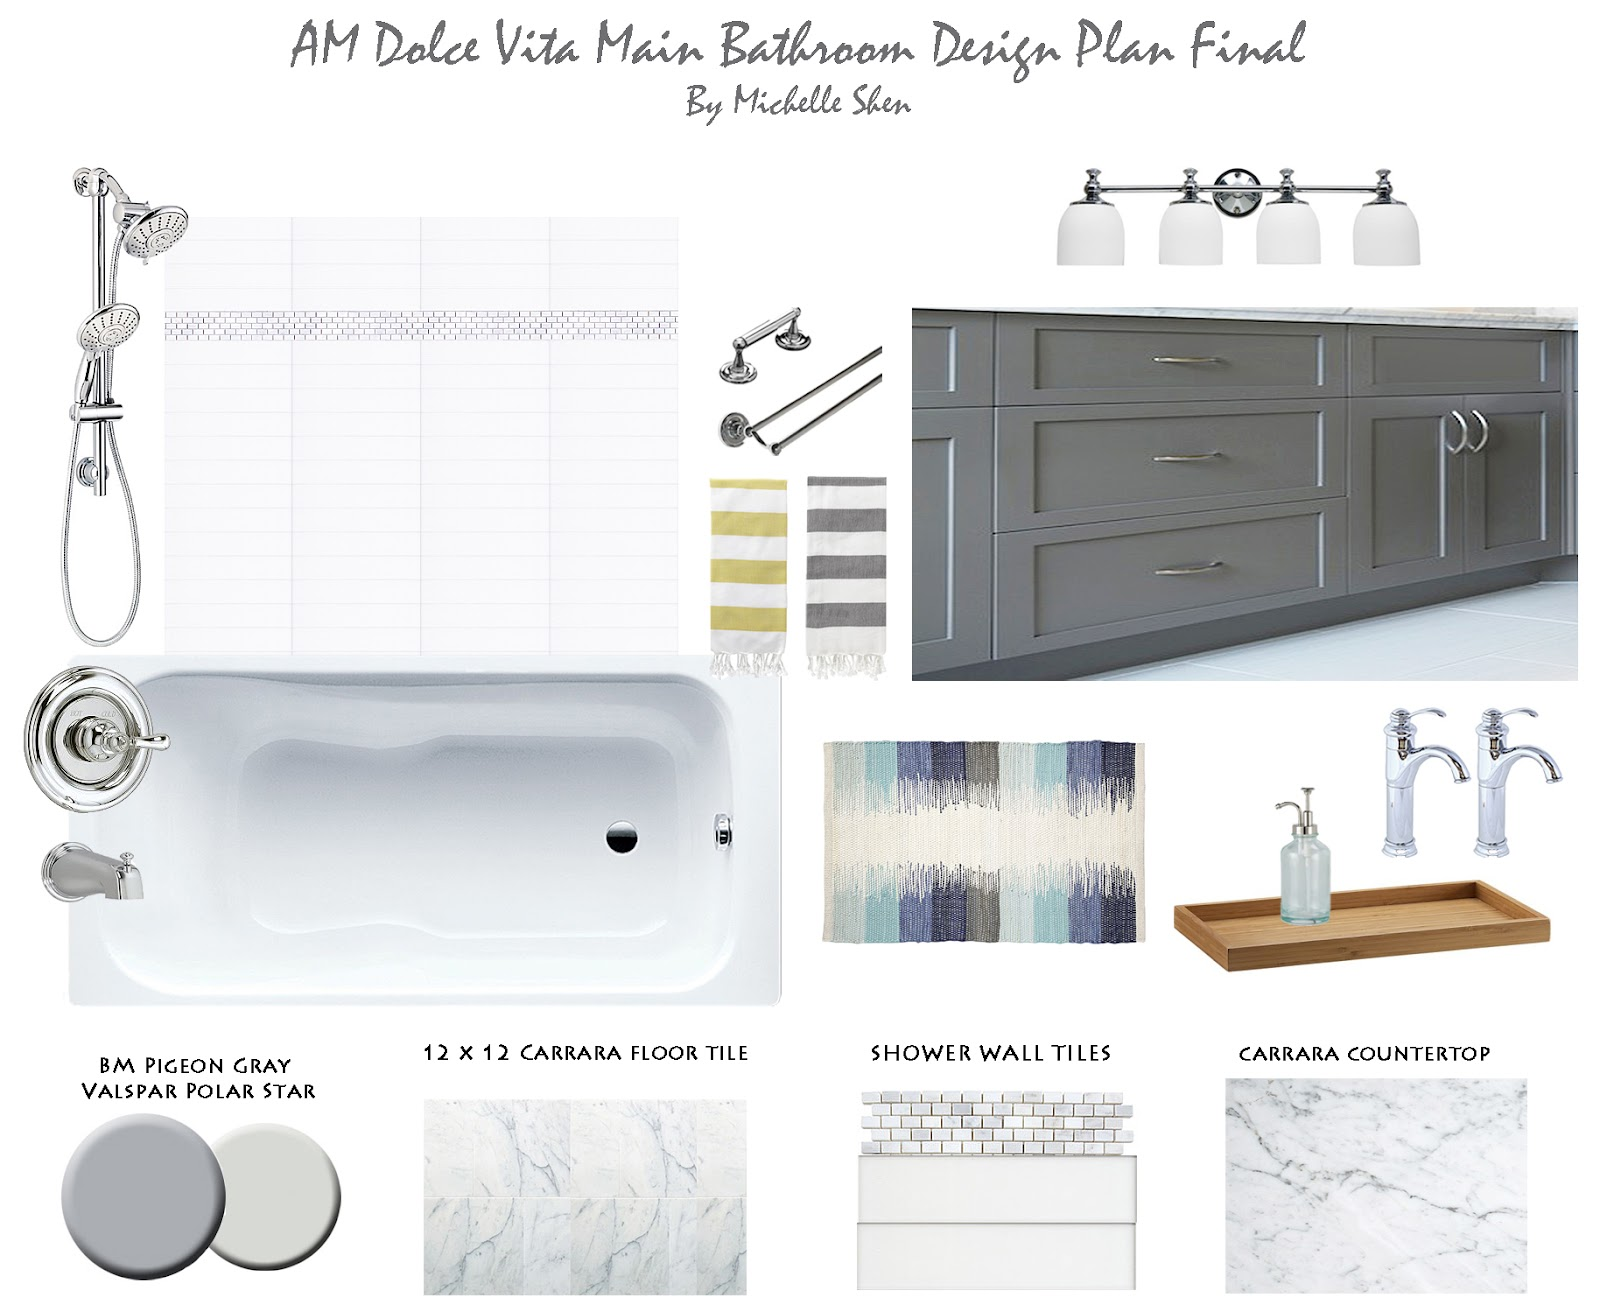 Bathroom Design Board am dolce vita: design boards